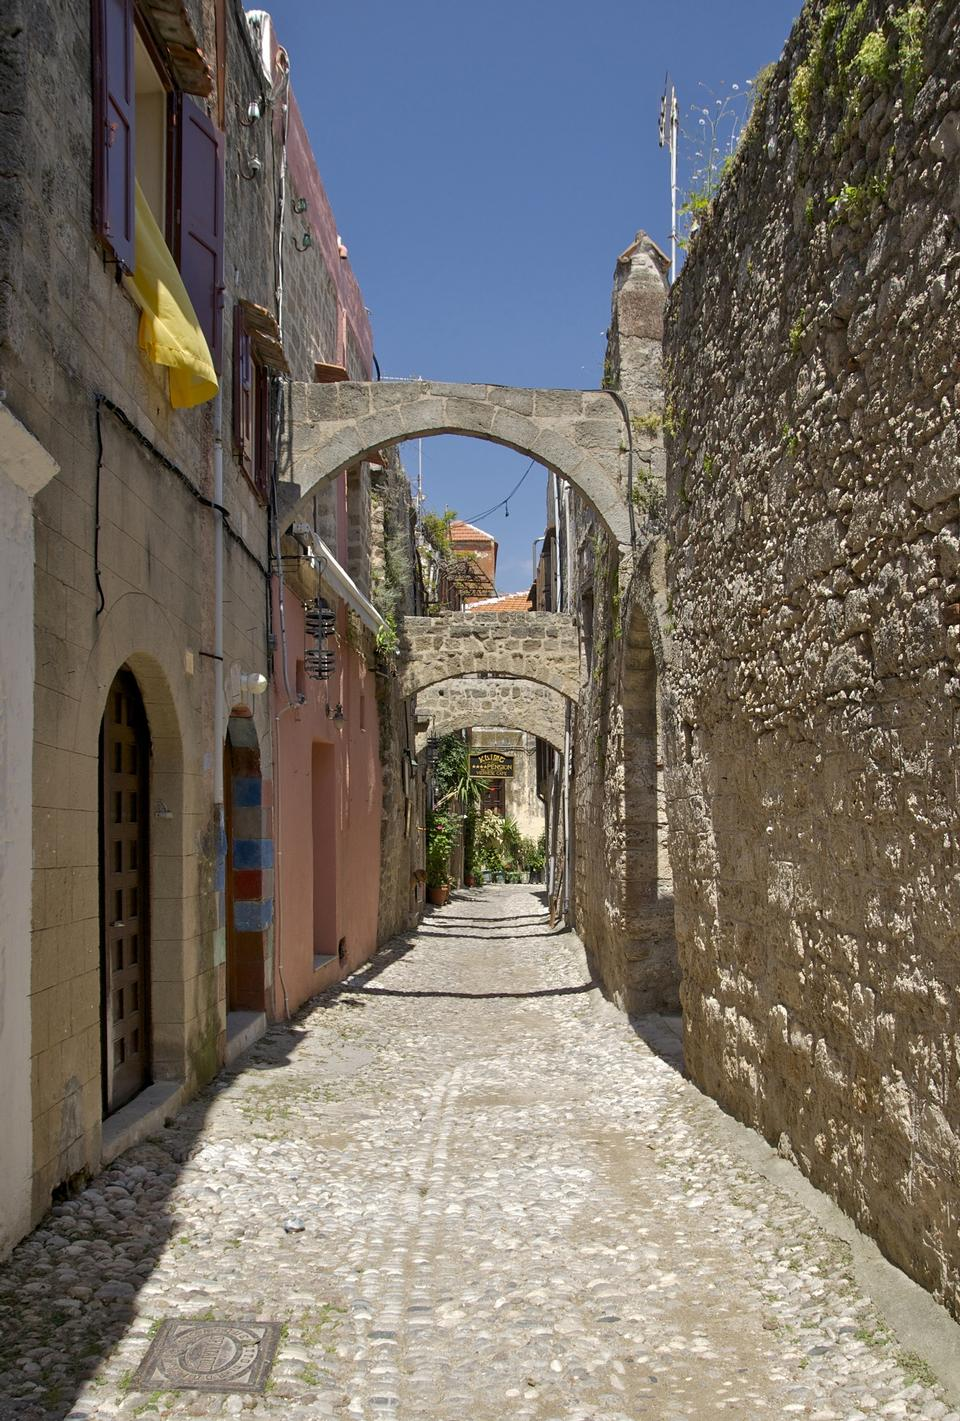 Free old street with arches, near Agiou Fanouriou street